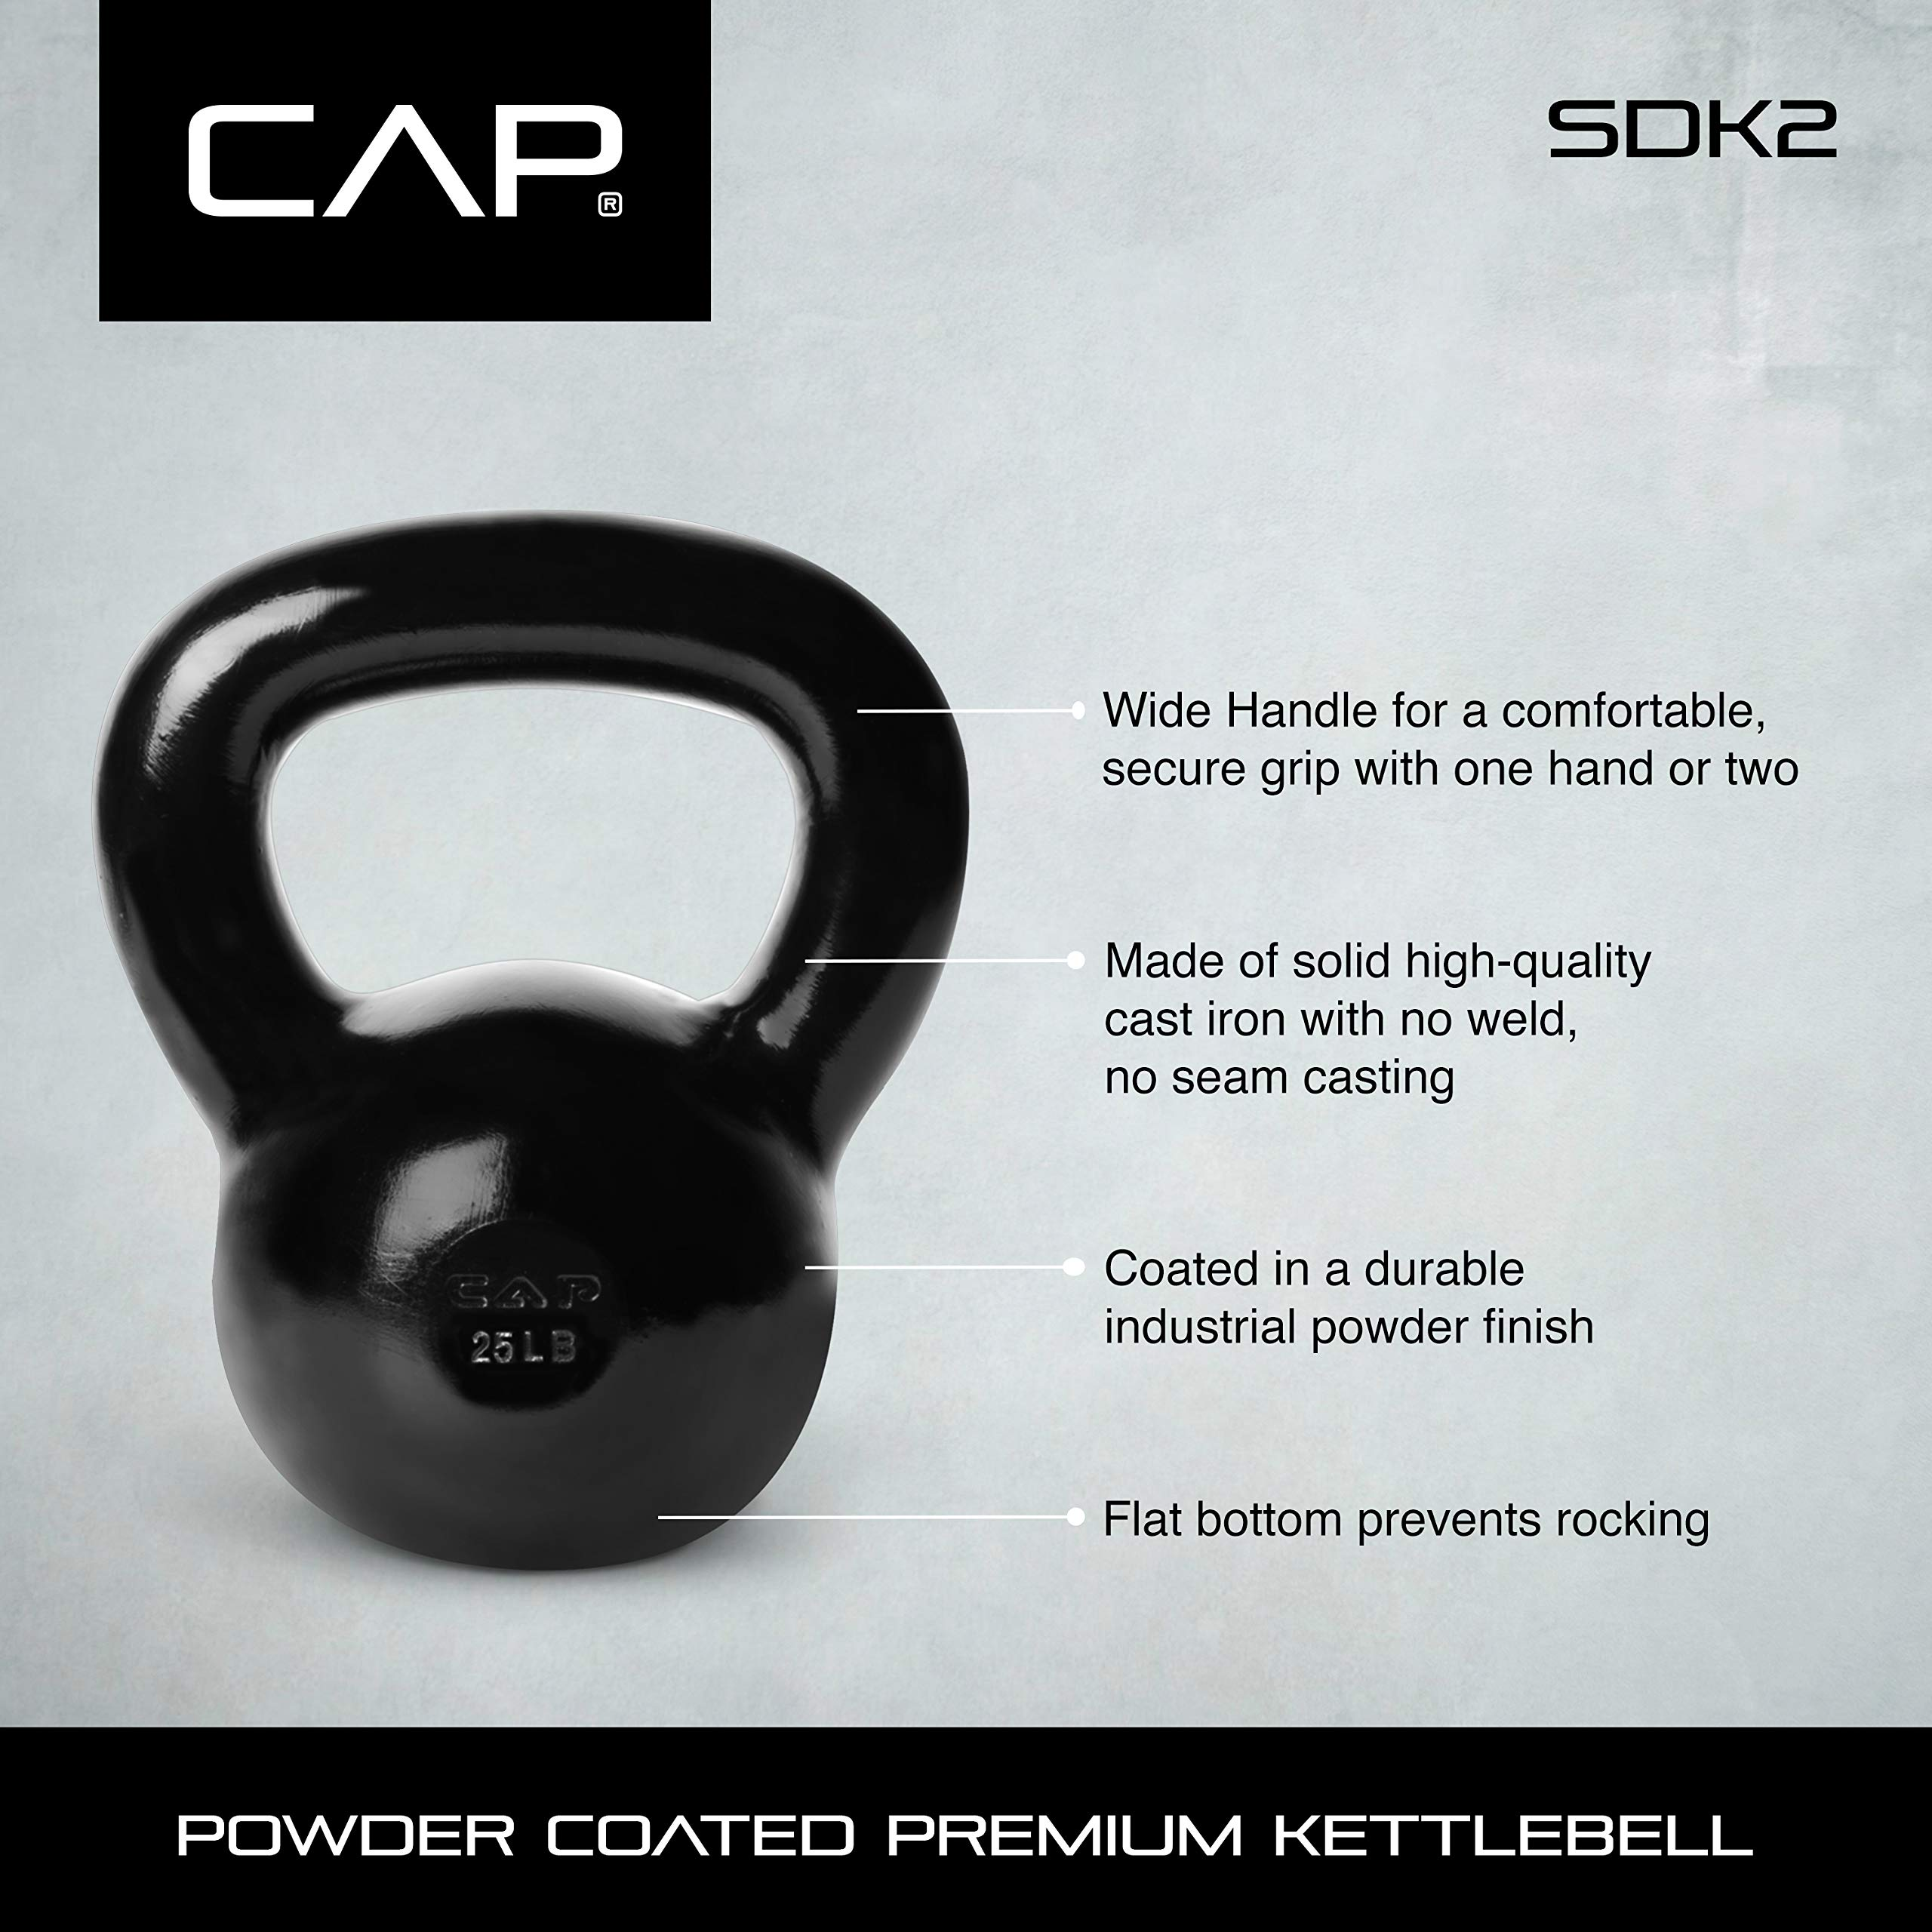 CAP Barbell SDK2-015 Enamel Coated Cast Iron Kettlebell, 15 lb, Black by CAP Barbell (Image #7)